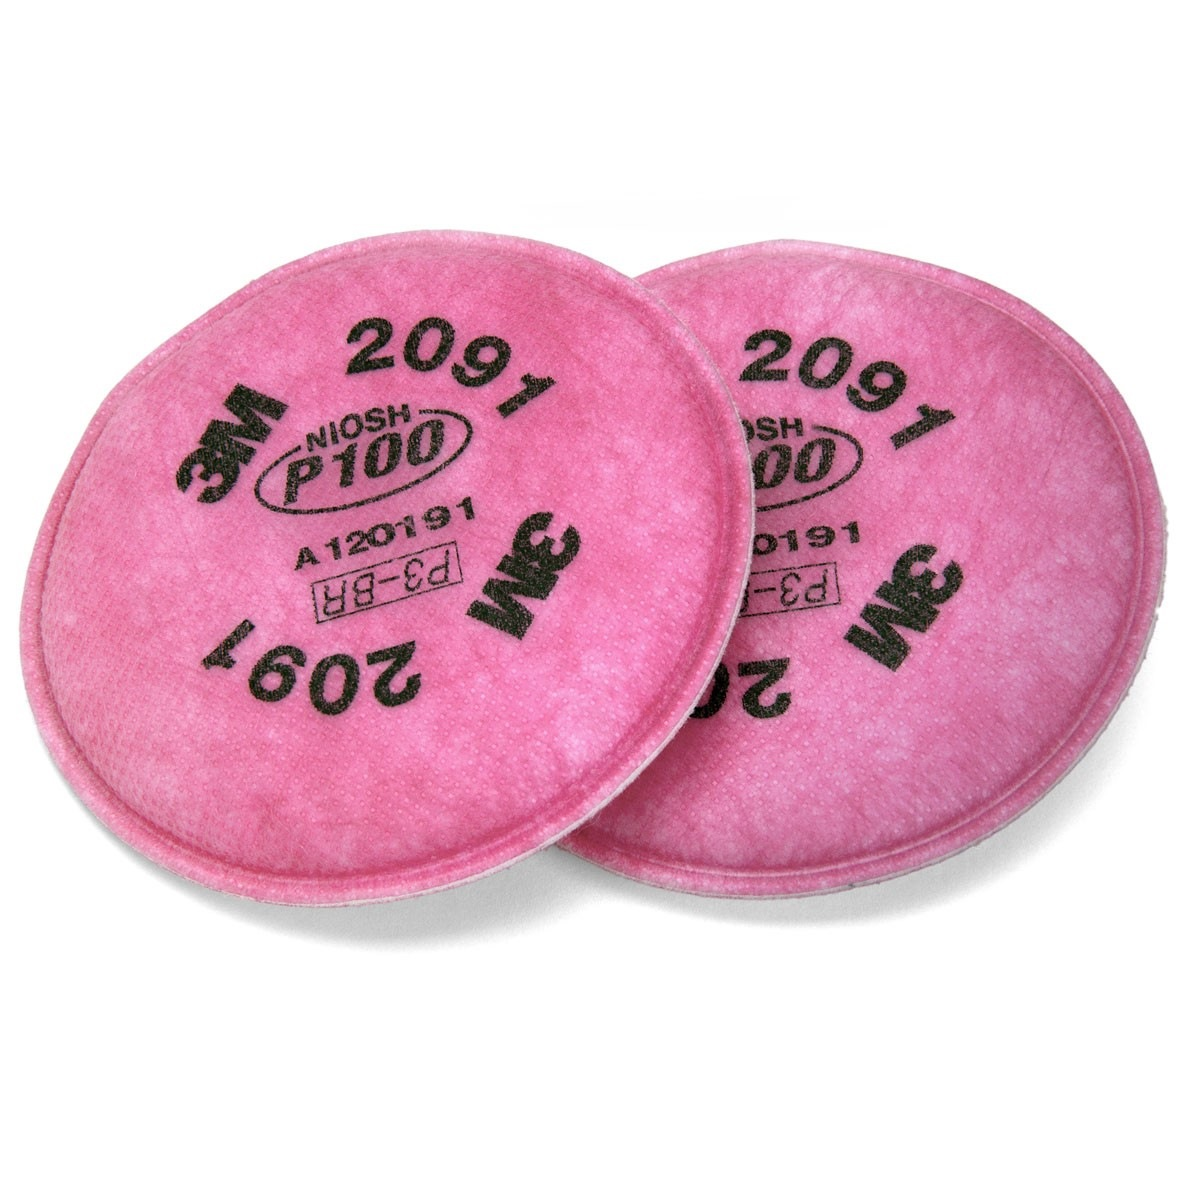 3m P100 Particulate Filter 2091 (2pcs/pack)